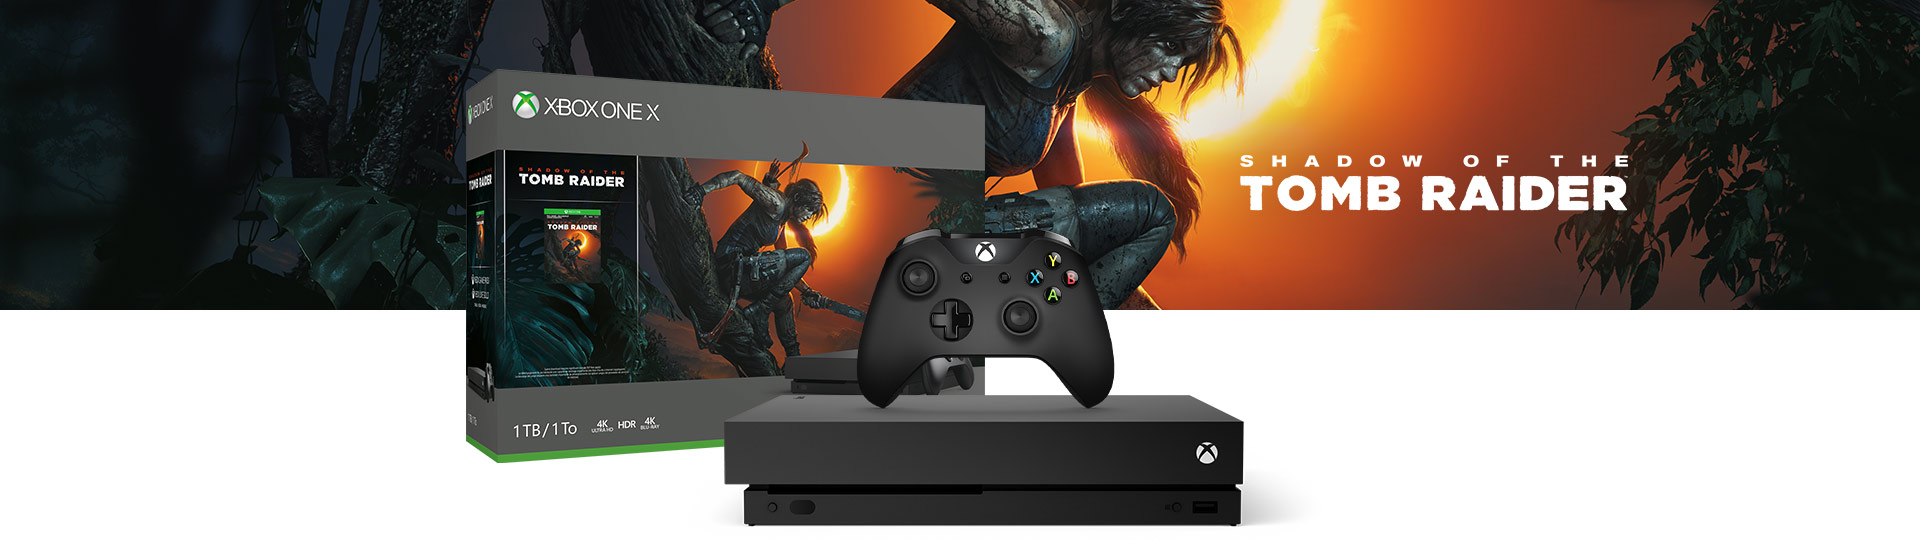 Xbox One X og kontroller ved siden av produktesken til Xbox One X Shadow of the Tomb Raider 1 terabyte